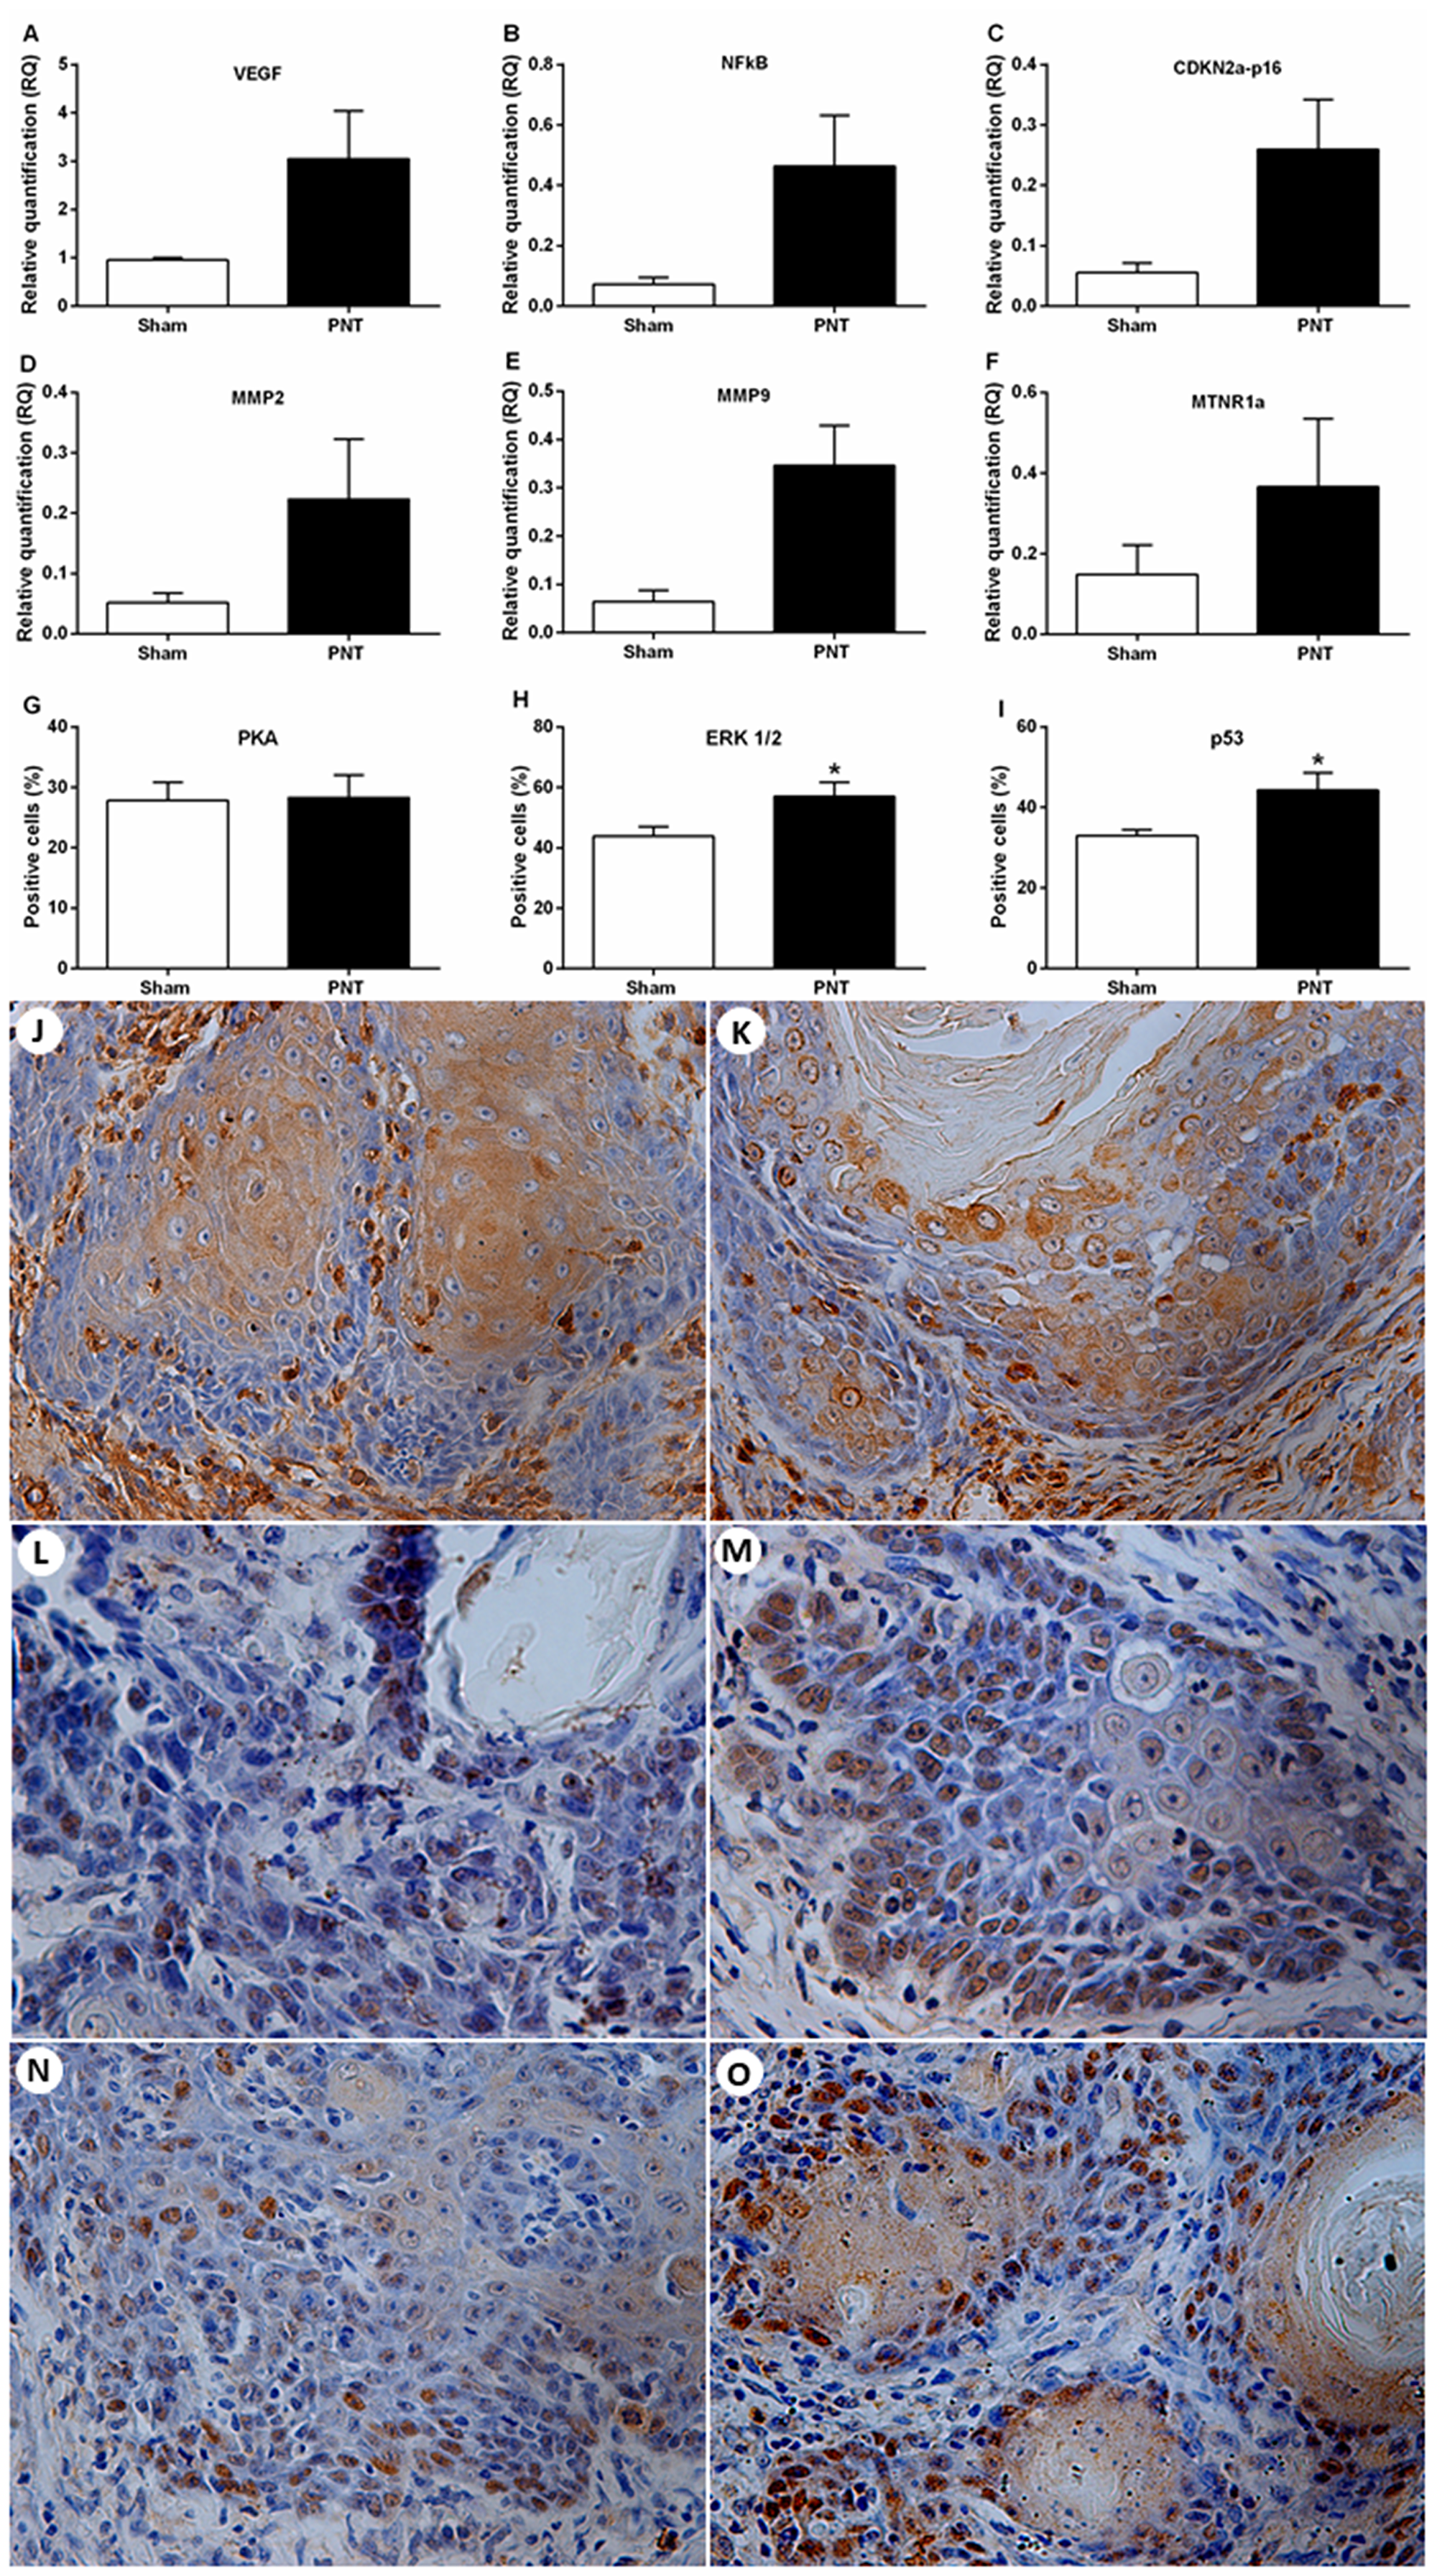 Expression of tumor progression-related genes and melatonin receptors and immunostaining for PKA, ERK1/2 and p53 in the OSCC microenvironment.